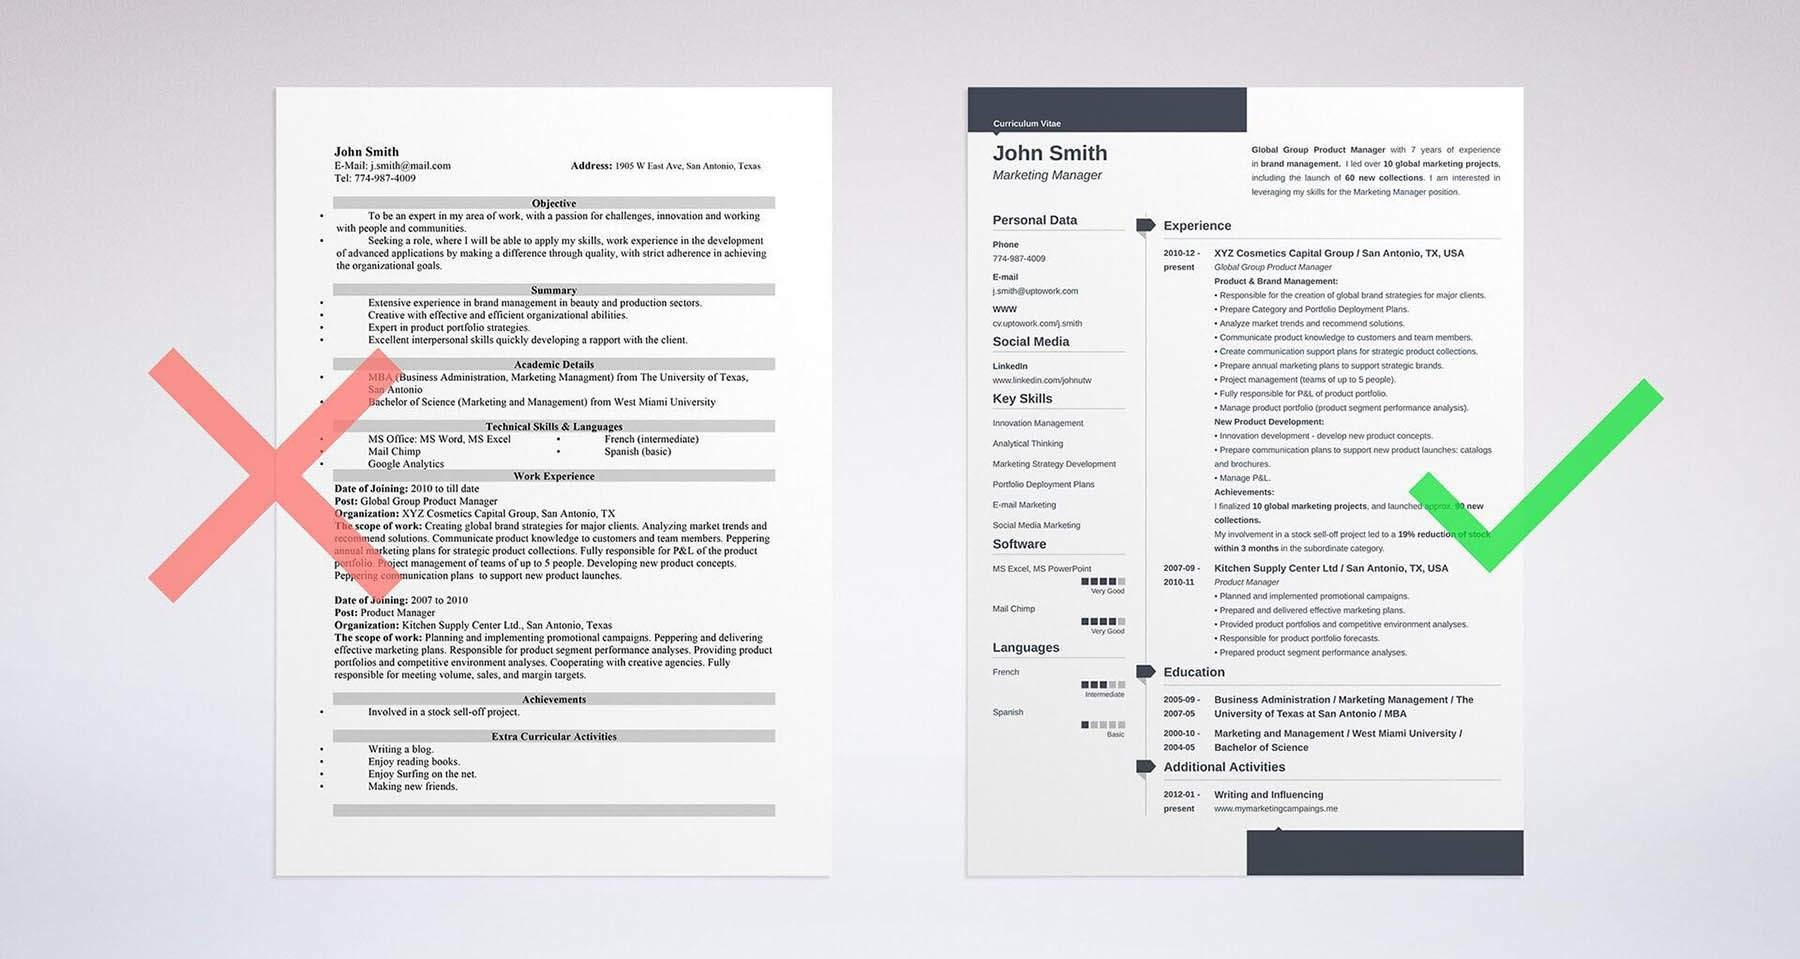 sample resume objective see 20 resume templates and create your resume here - Profile Resume Examples